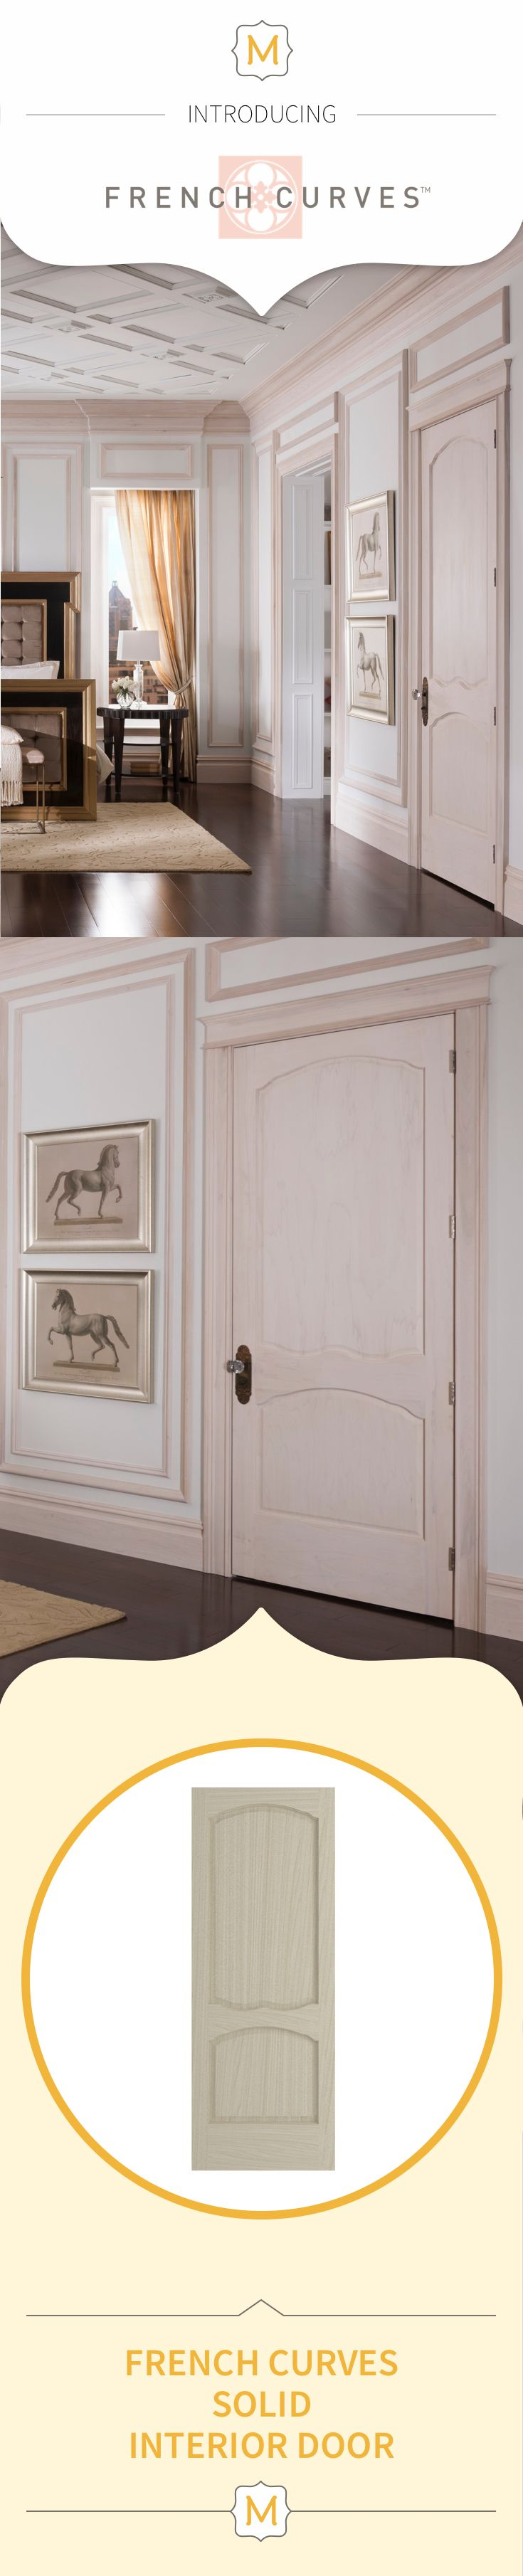 Your bedroom doors don't have to be boring. This Metrie French Curves Collection interior door is anything but ordinary - and that's just the way we like it.